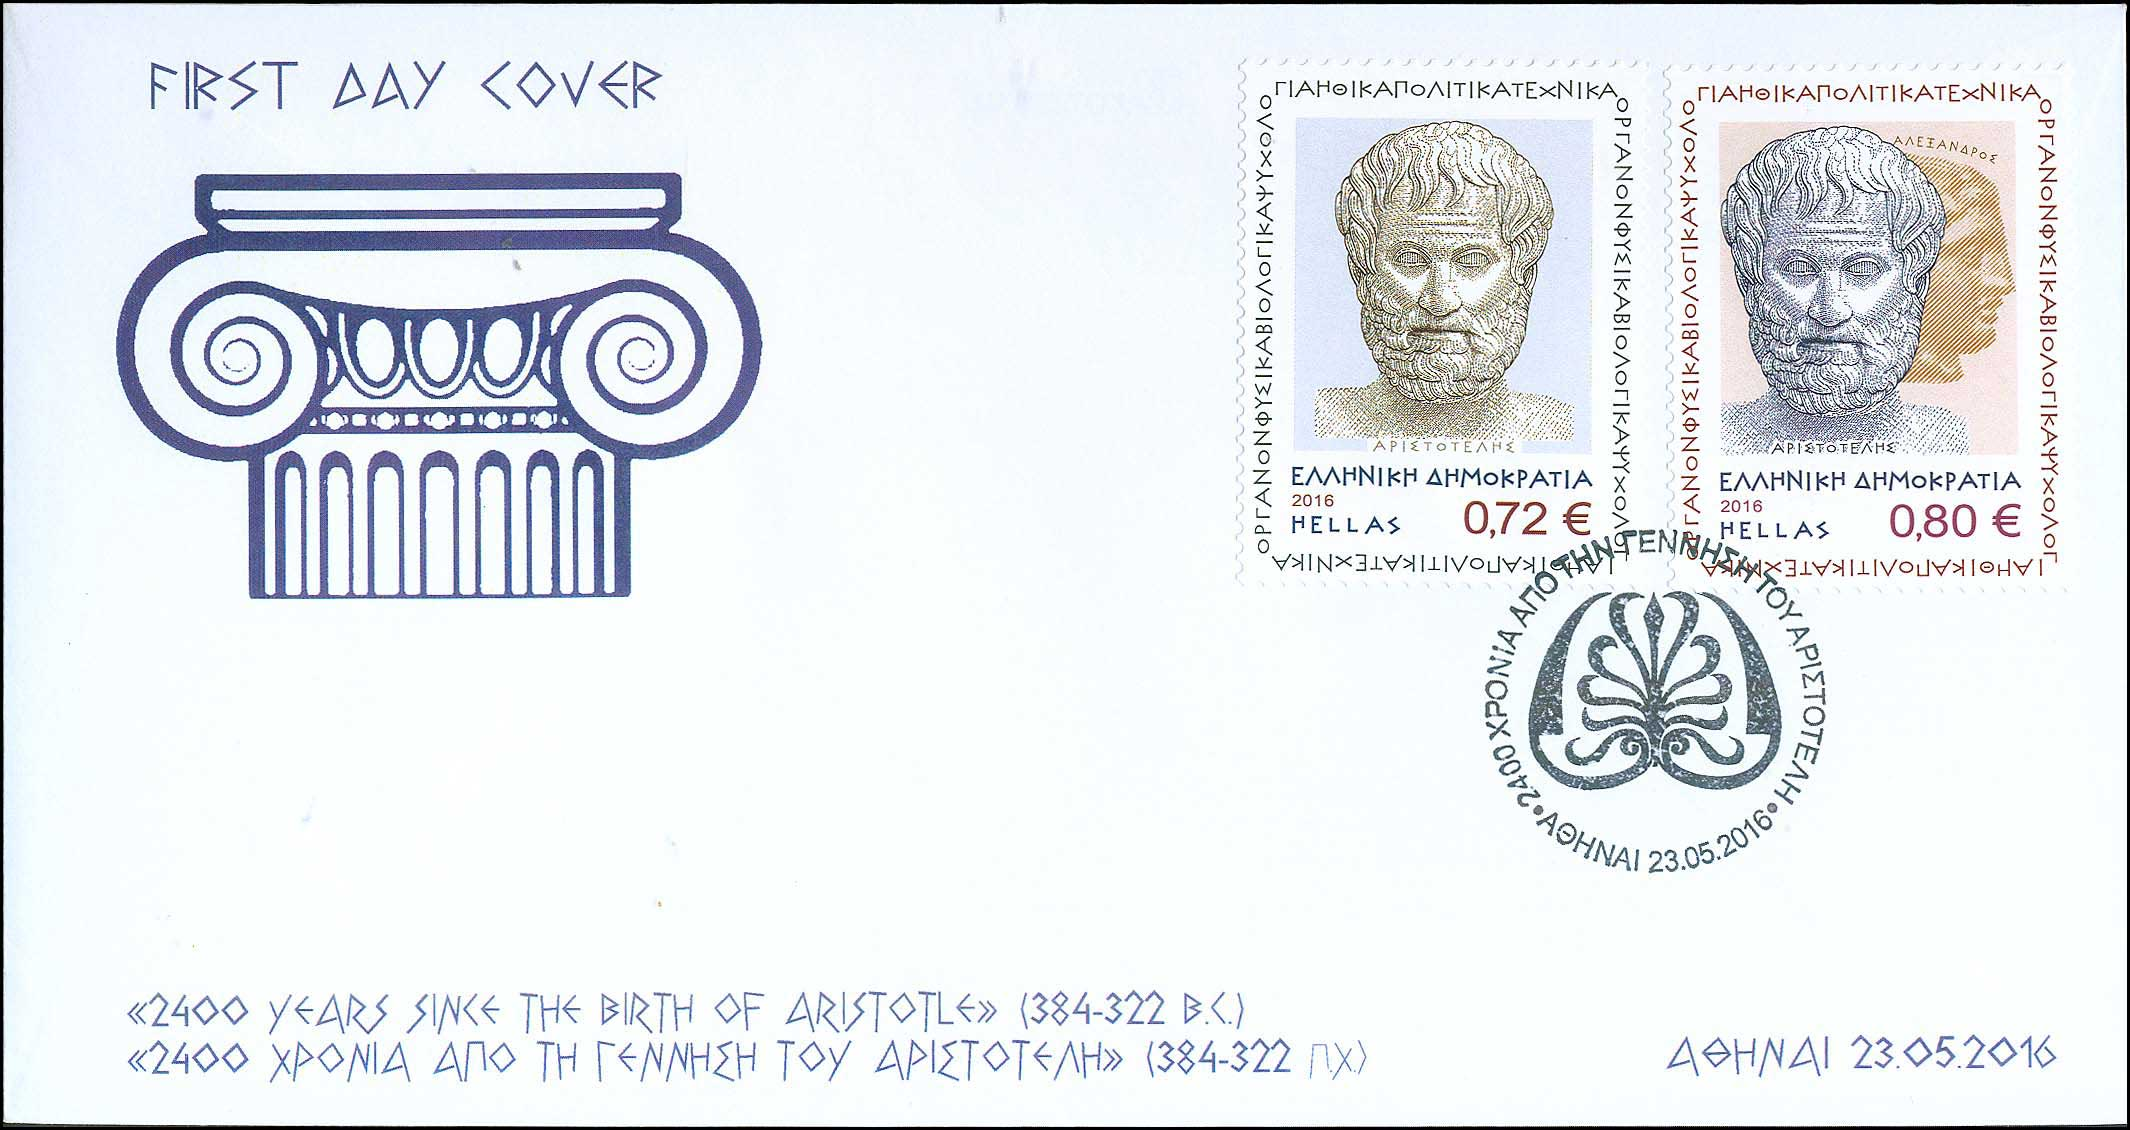 Lot 640 - -  FIRST DAY COVER First day cover -  A. Karamitsos Public Auction 668 General Philatelic Auction